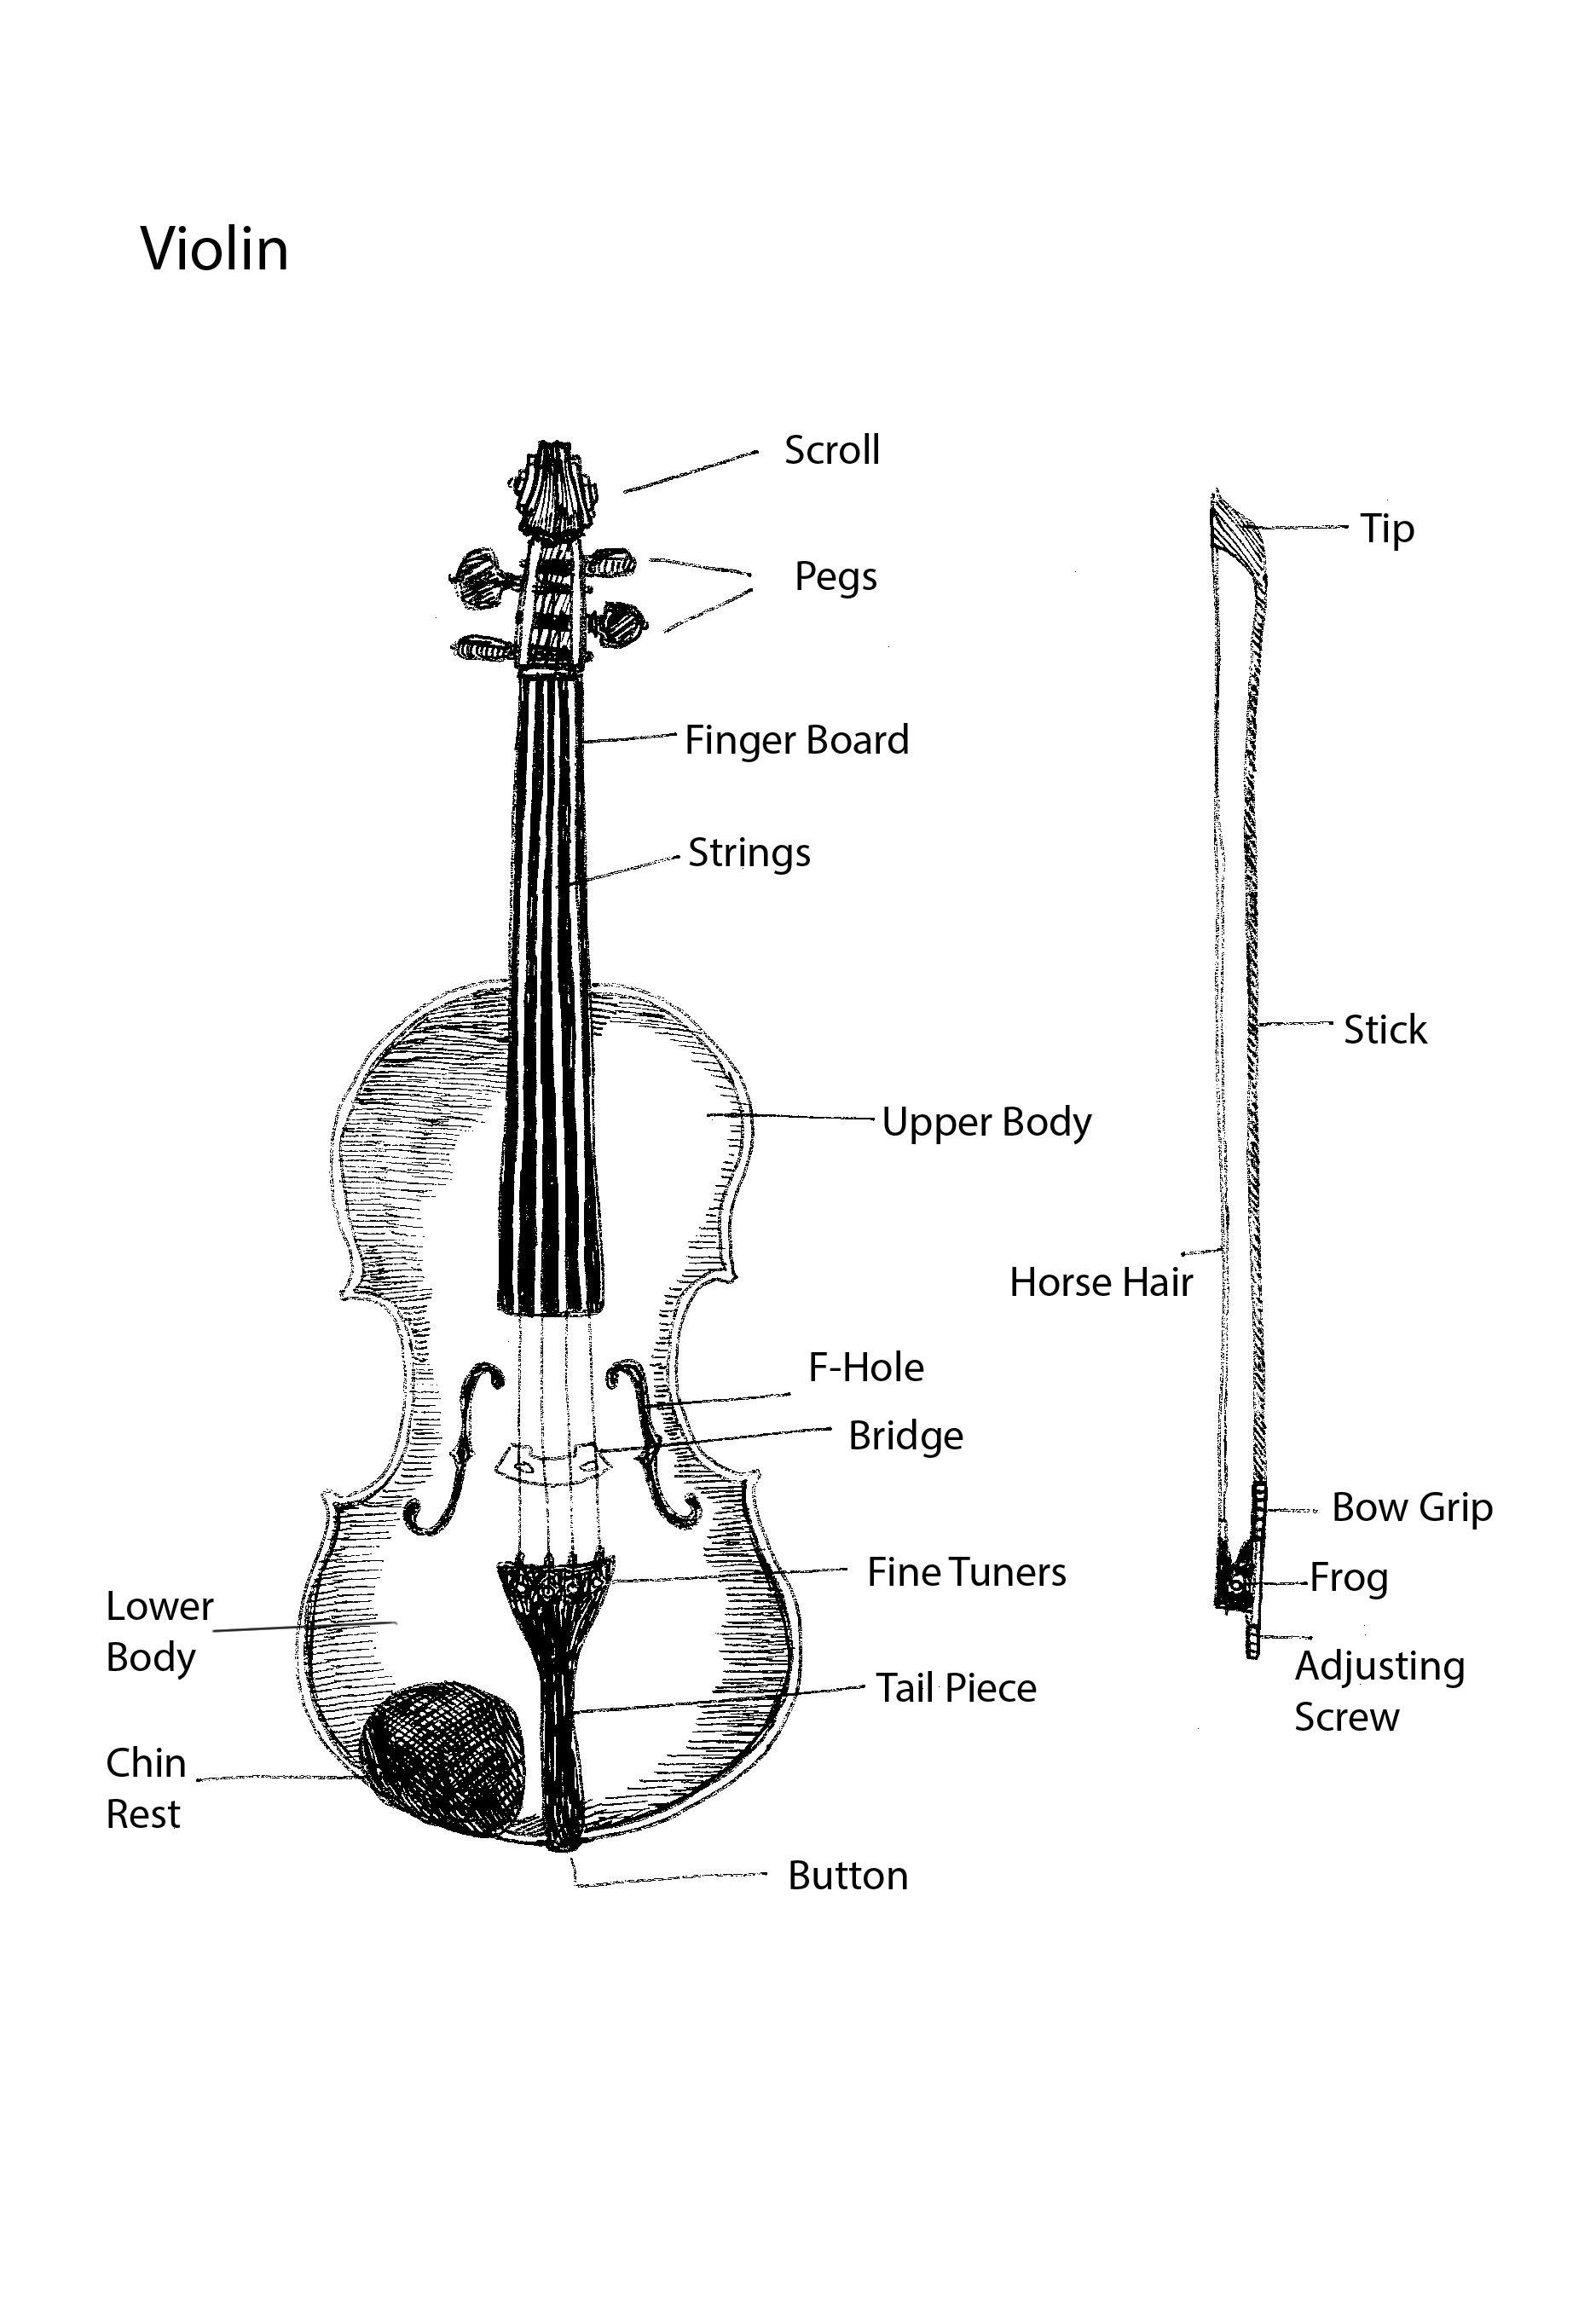 Violin Parts And Printable Diagram